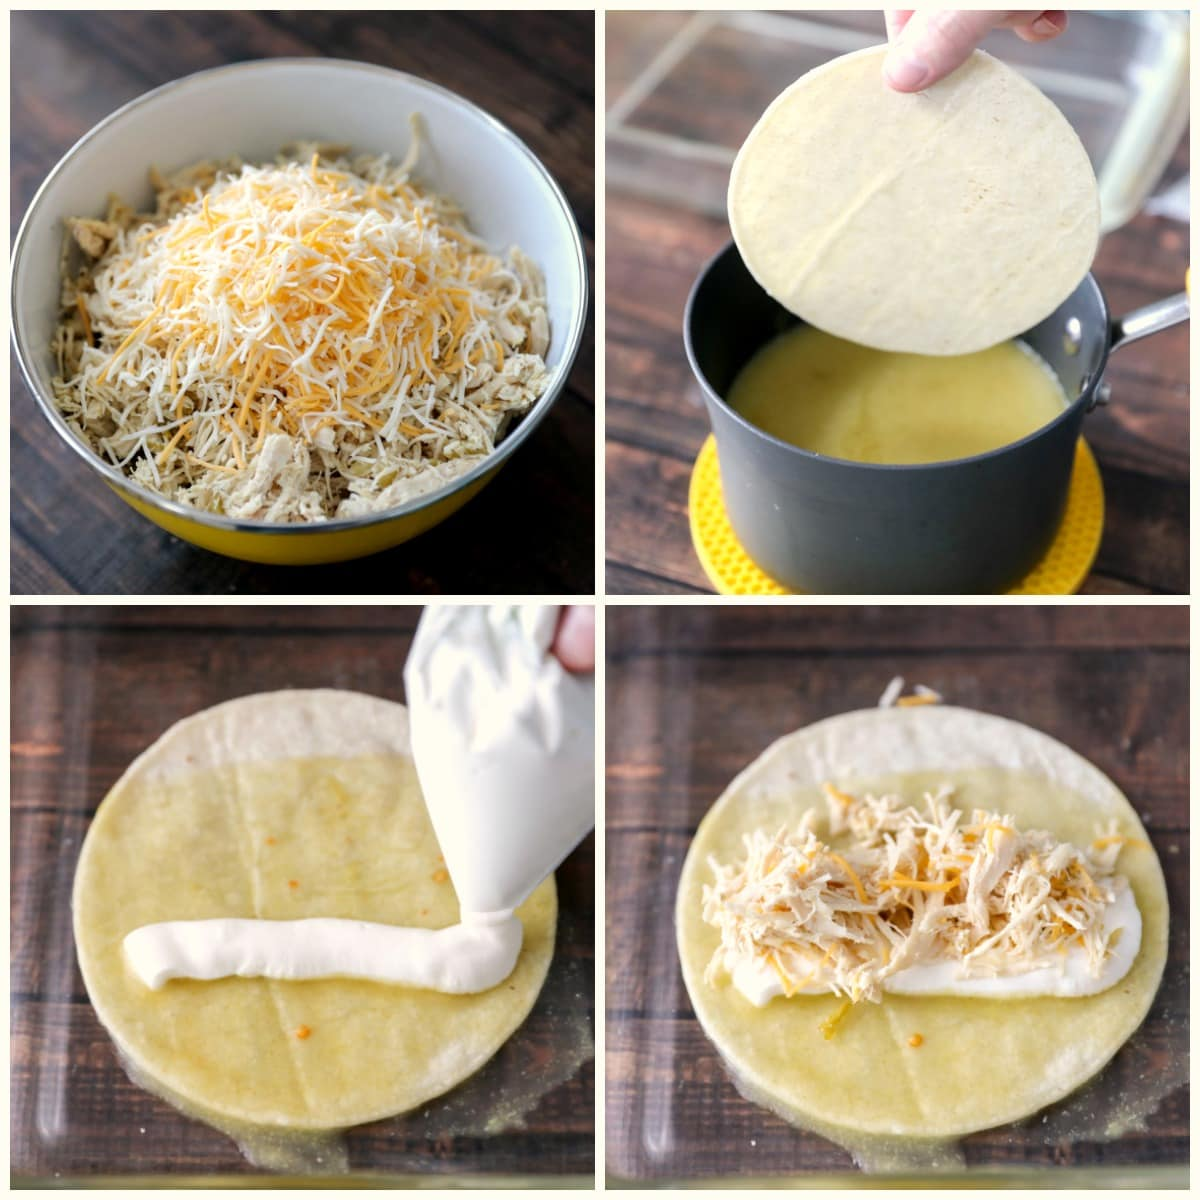 How to Make Chicken Enchiladas - process pics